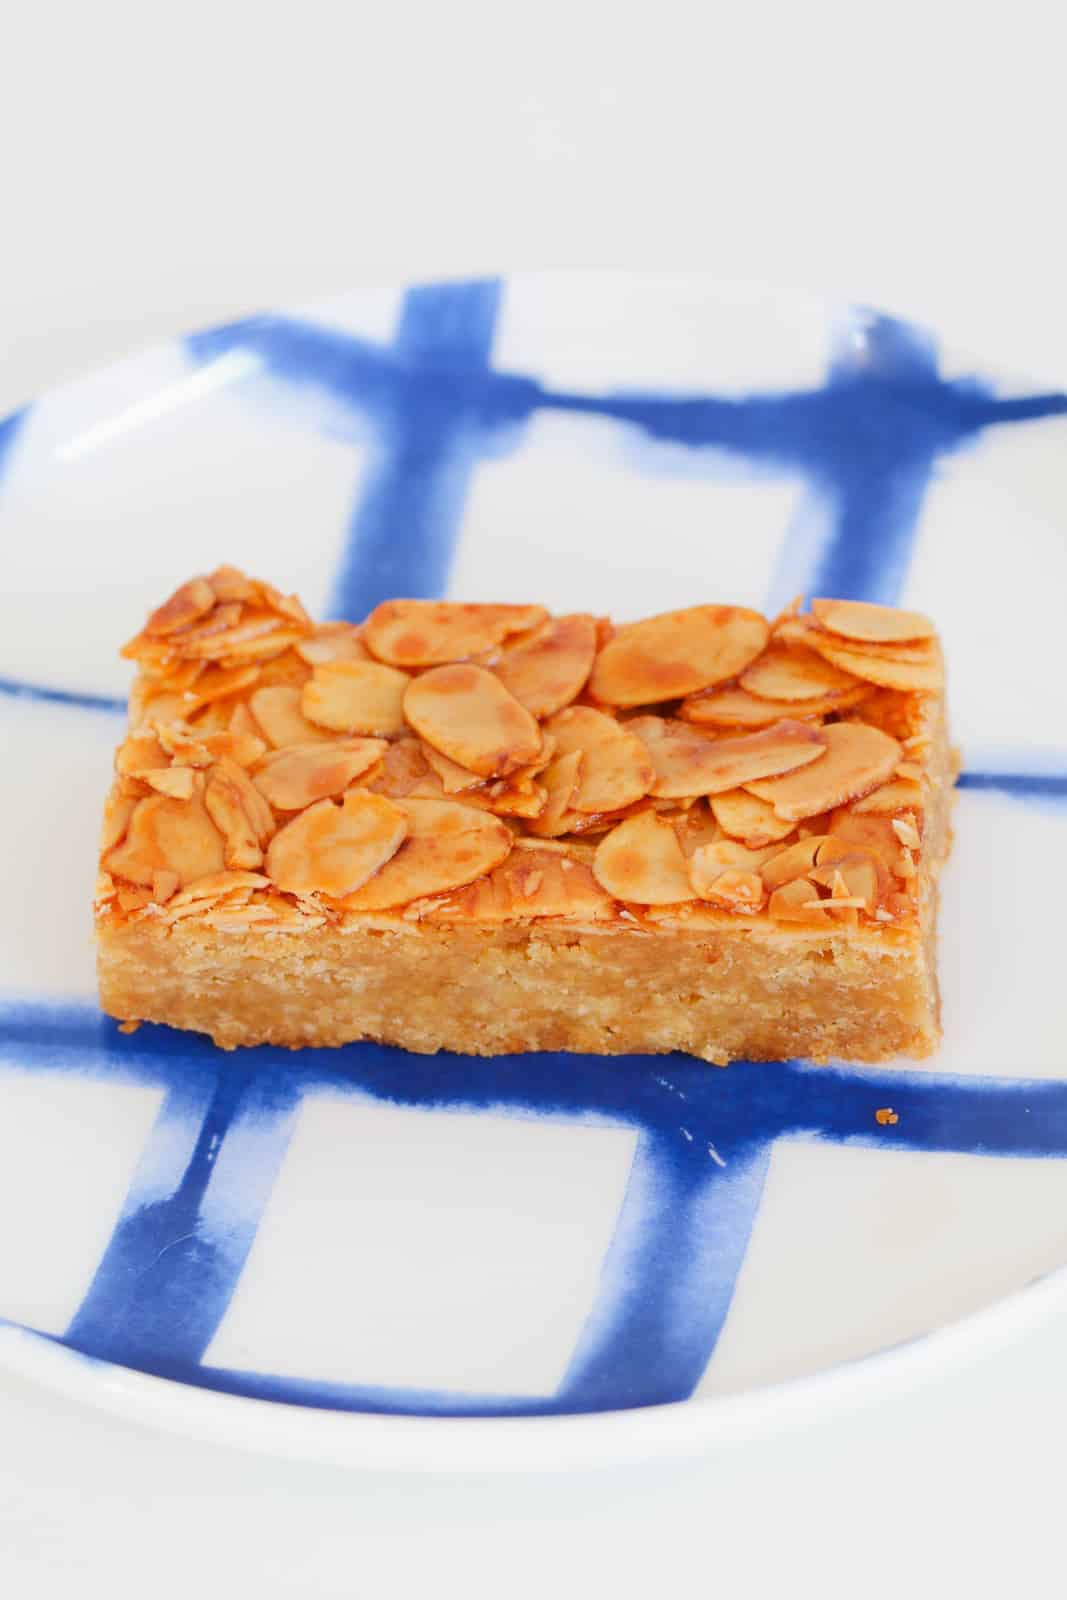 A piece of almond slice on a blue and white plate